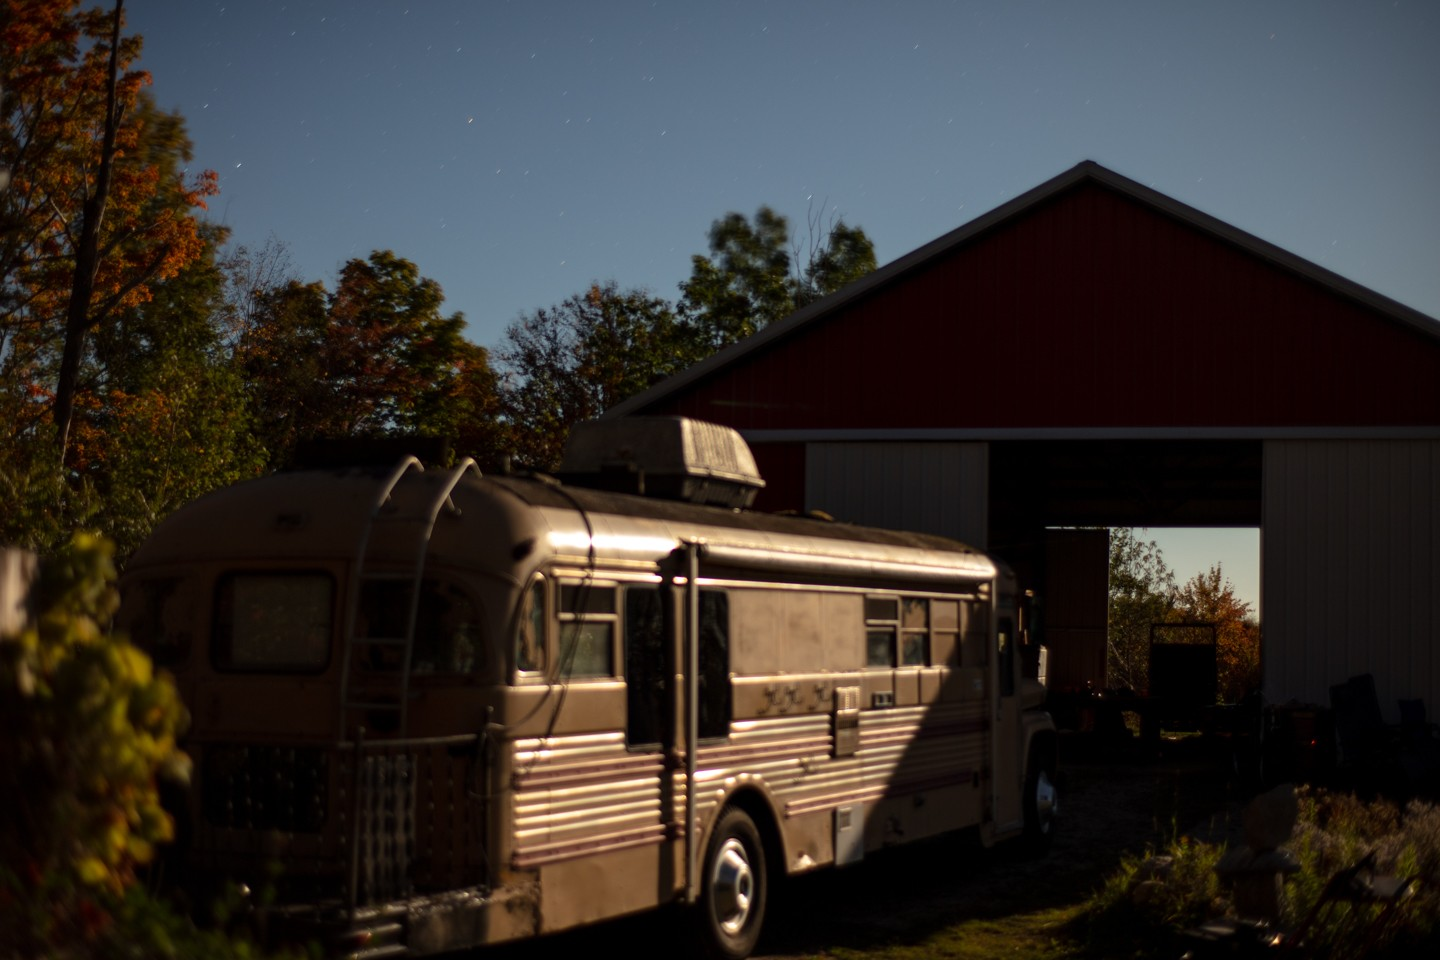 Risher_Wondrous (5 of 7)- This is a landscape orientated digital photograph made outdoors at night. In the photograph from the left sits an old renovated camping bus. The bus is illuminated by the strong moonlight. In front of the bus stands a tall red ba